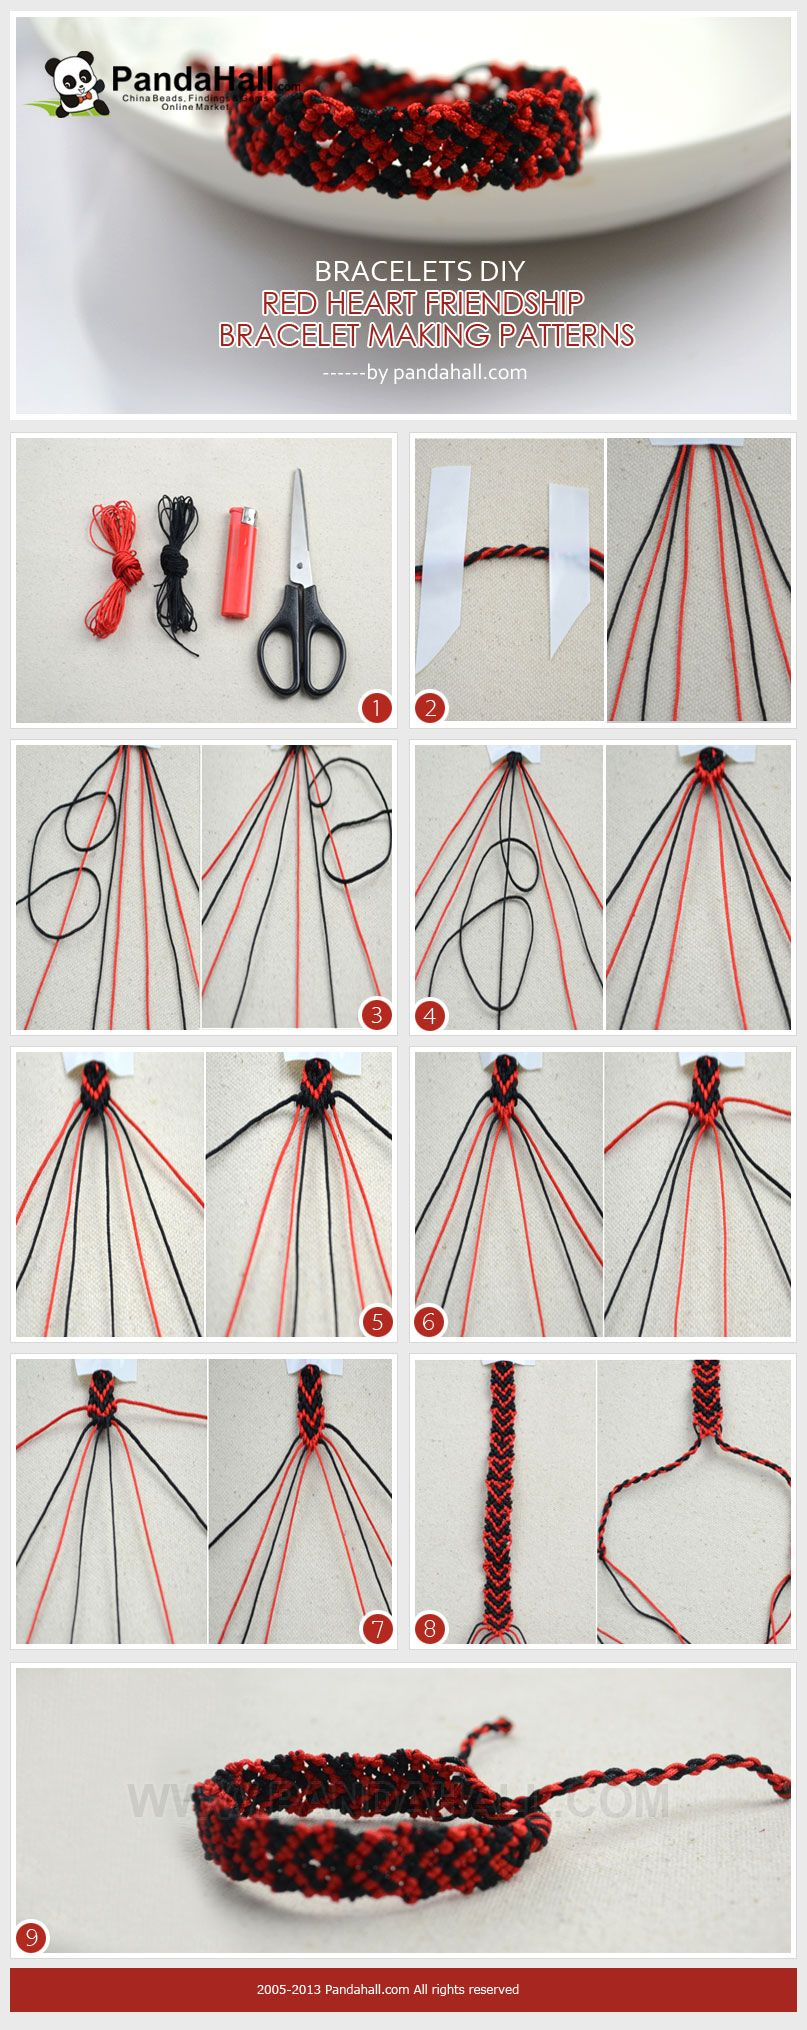 In the bracelets diy project we present you a fine way about red